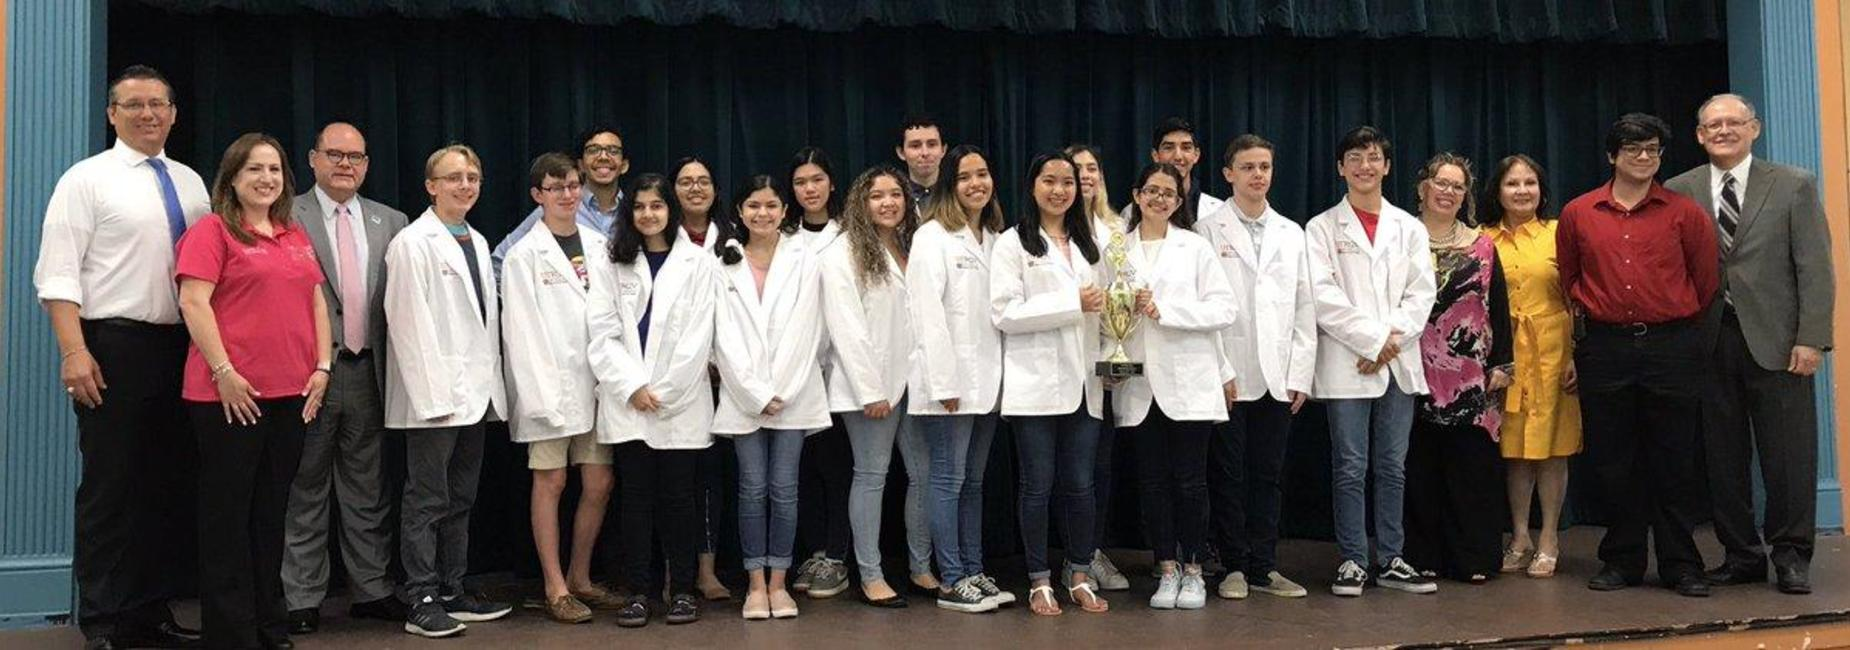 STATE BOUND Science Olympiad team